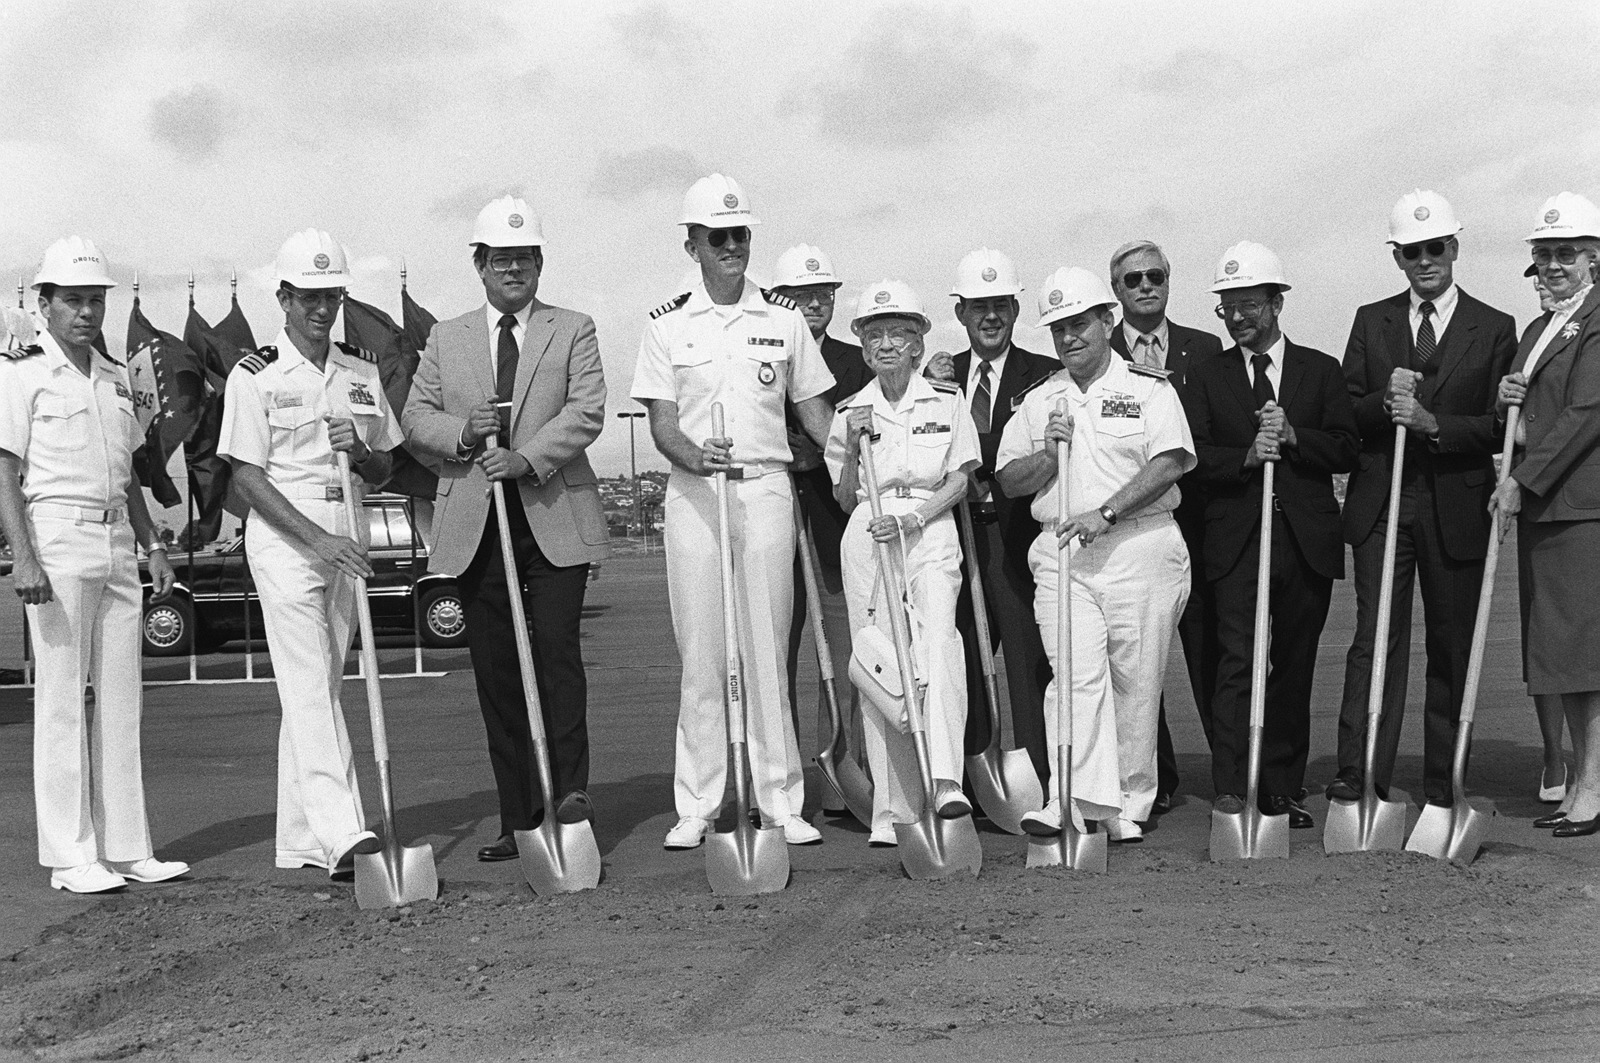 Members of the Military Construction Steering Committee pose during the groundbreaking of the Grace M. Hopper Navy Regional Data Automation Center. Members include Captain Robert L. Barton (fourth from left), Commodore Grace M. Hopper, special assistant to the commander, Naval Data Automation Command (center); Rear Admiral Paul Sutherland Jr., commander, Naval Data Automation Command; (front row right) and Project Manager Eva M. Sebastian (far right)